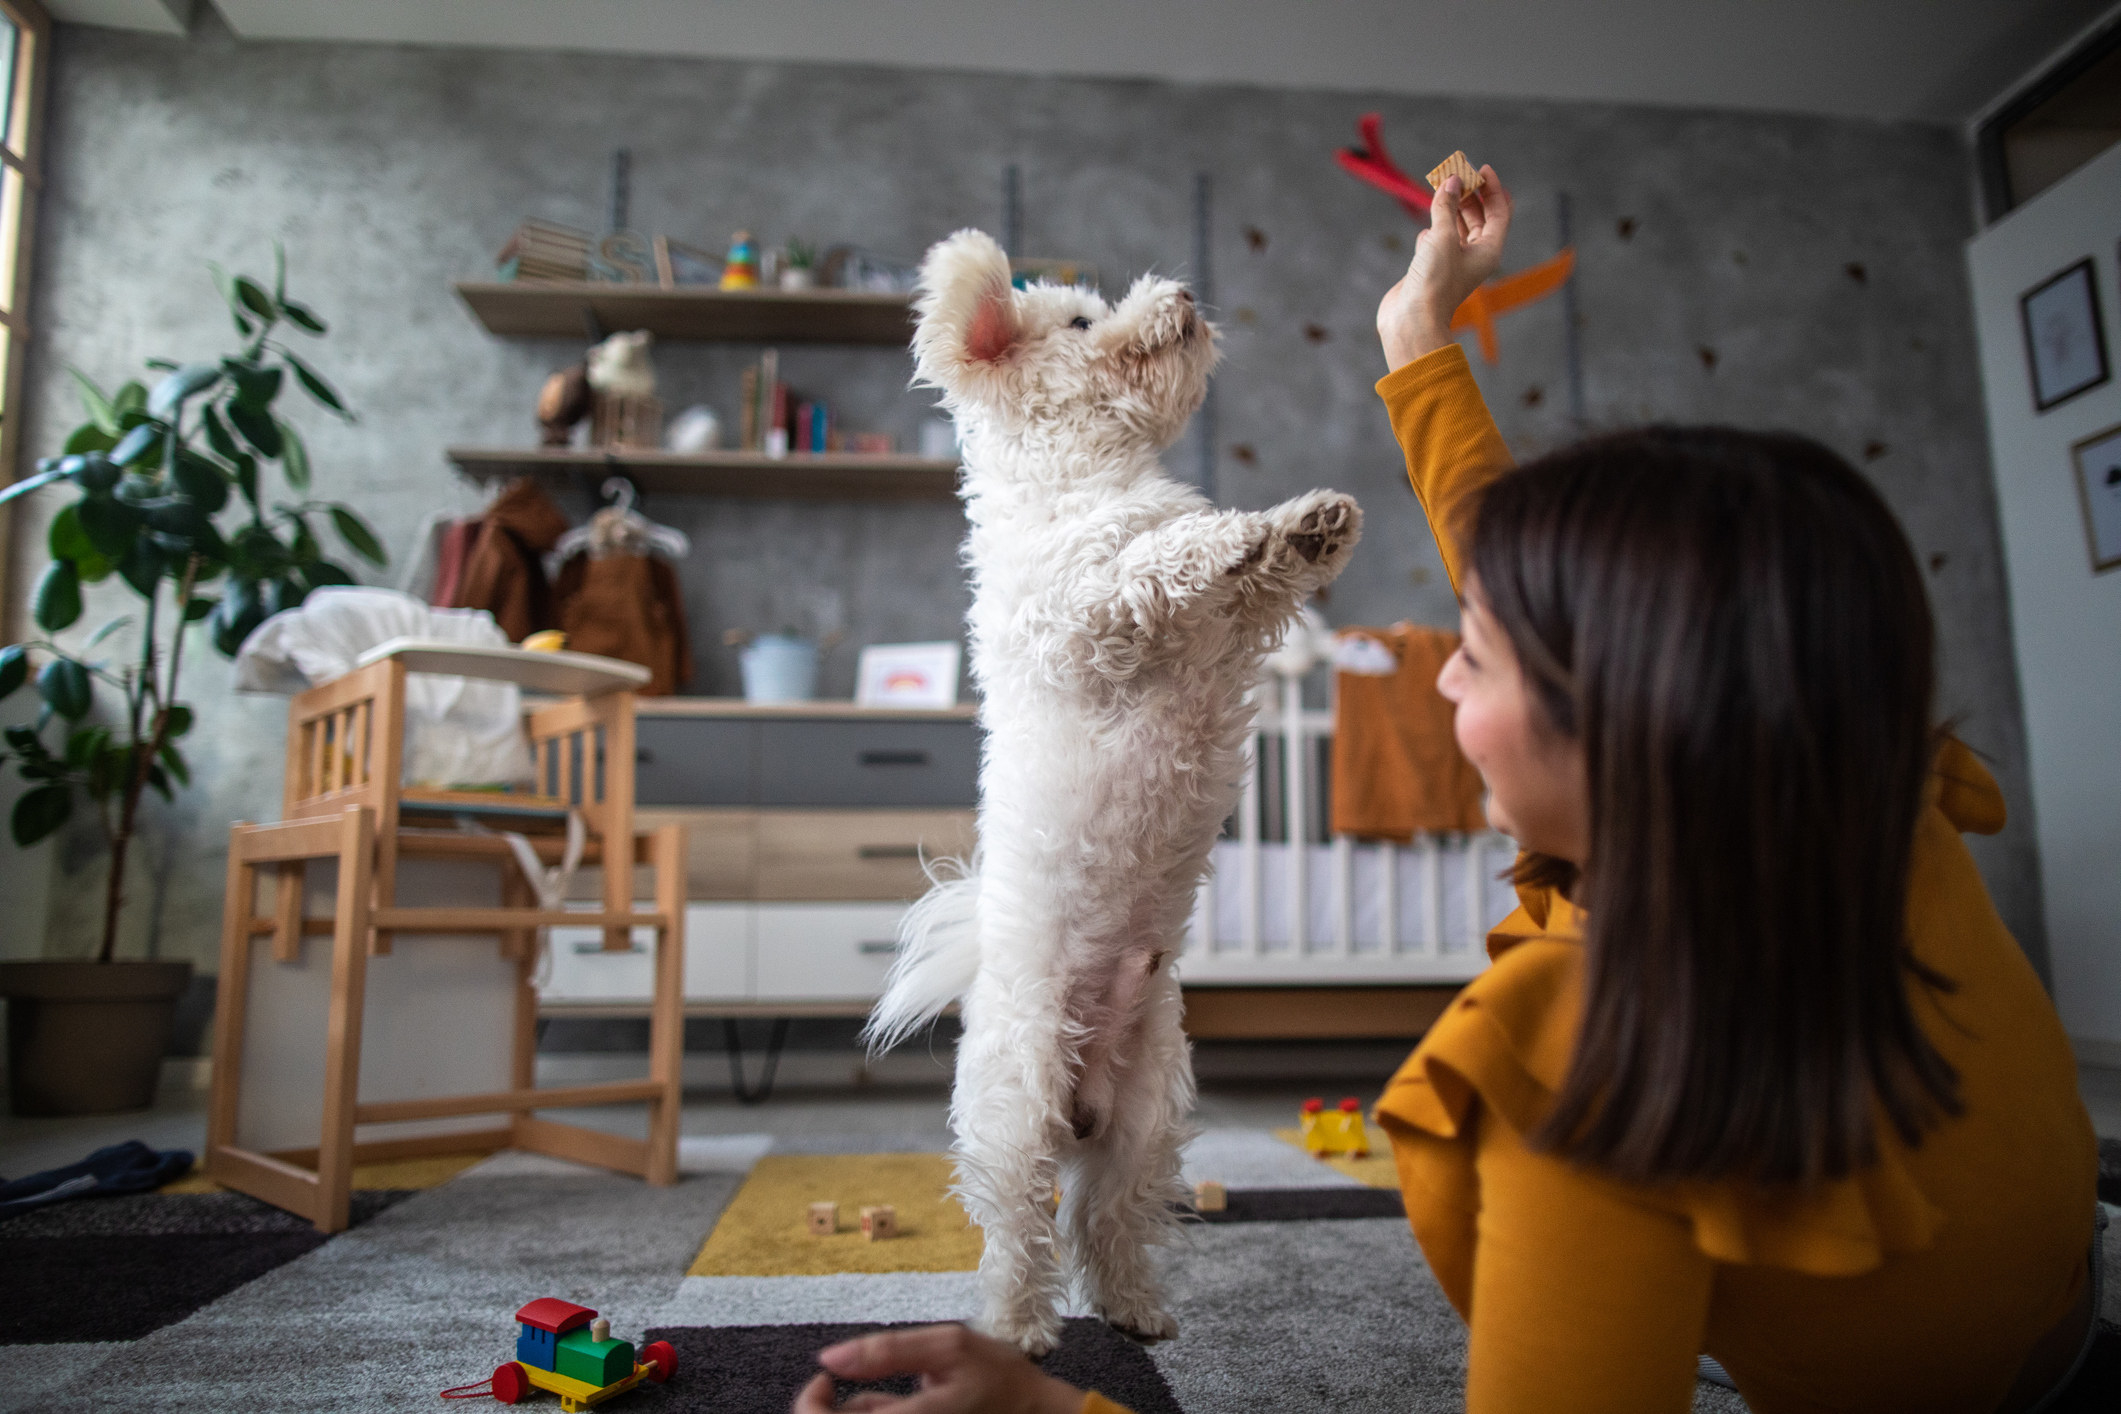 Young woman playing with fluffy pet at home, dog jumping and trying to catch the toy.